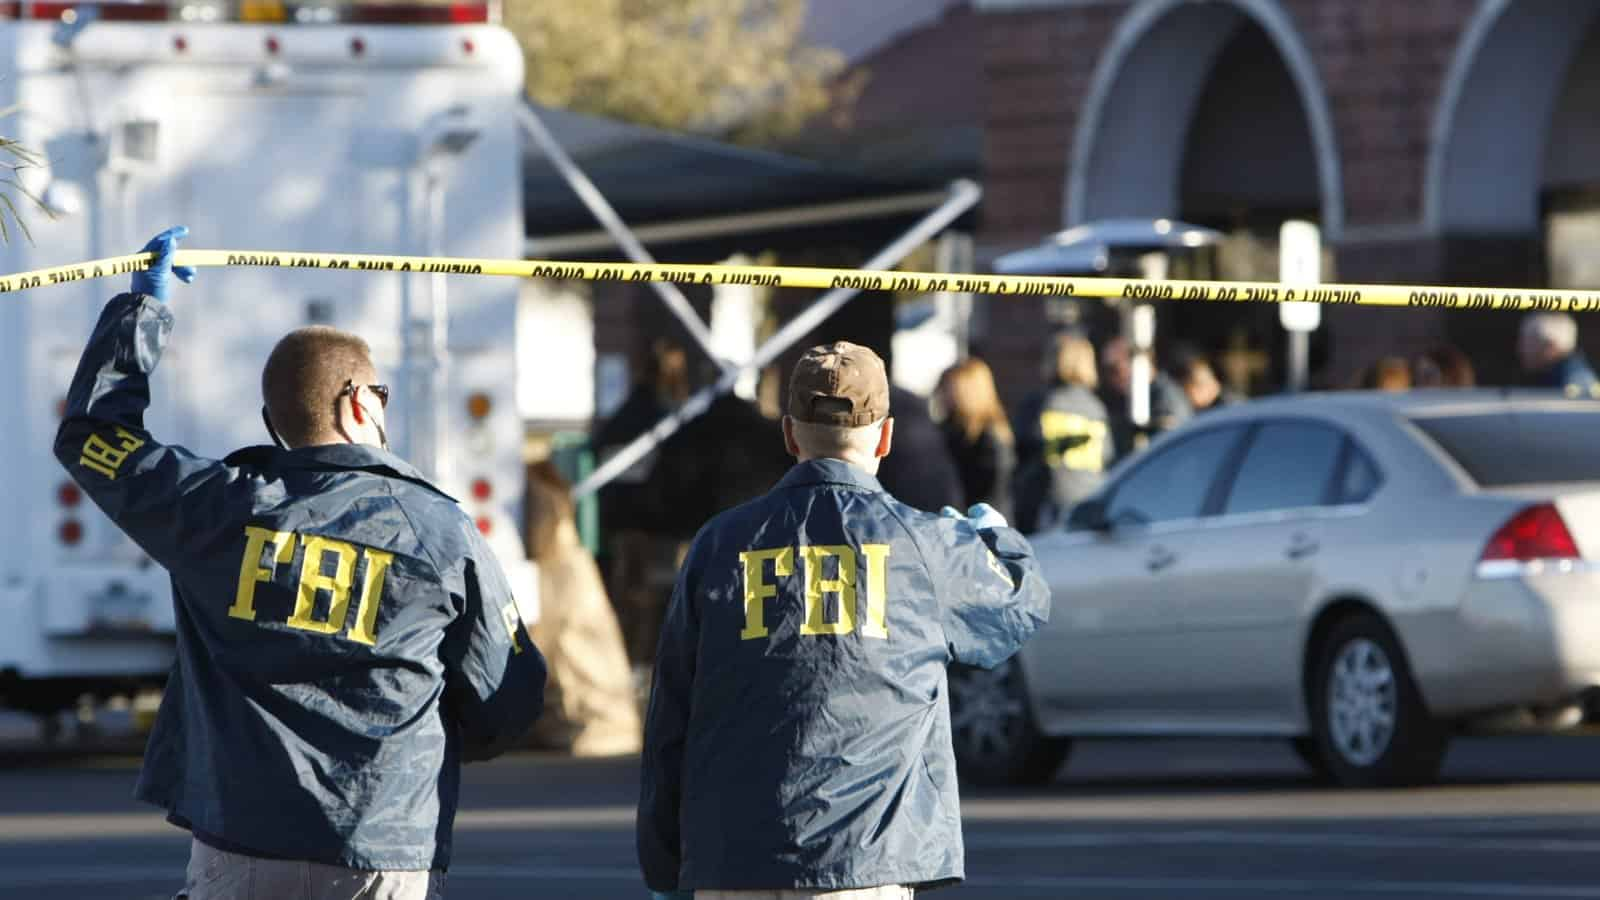 The plan to kill police decoded by the FBI